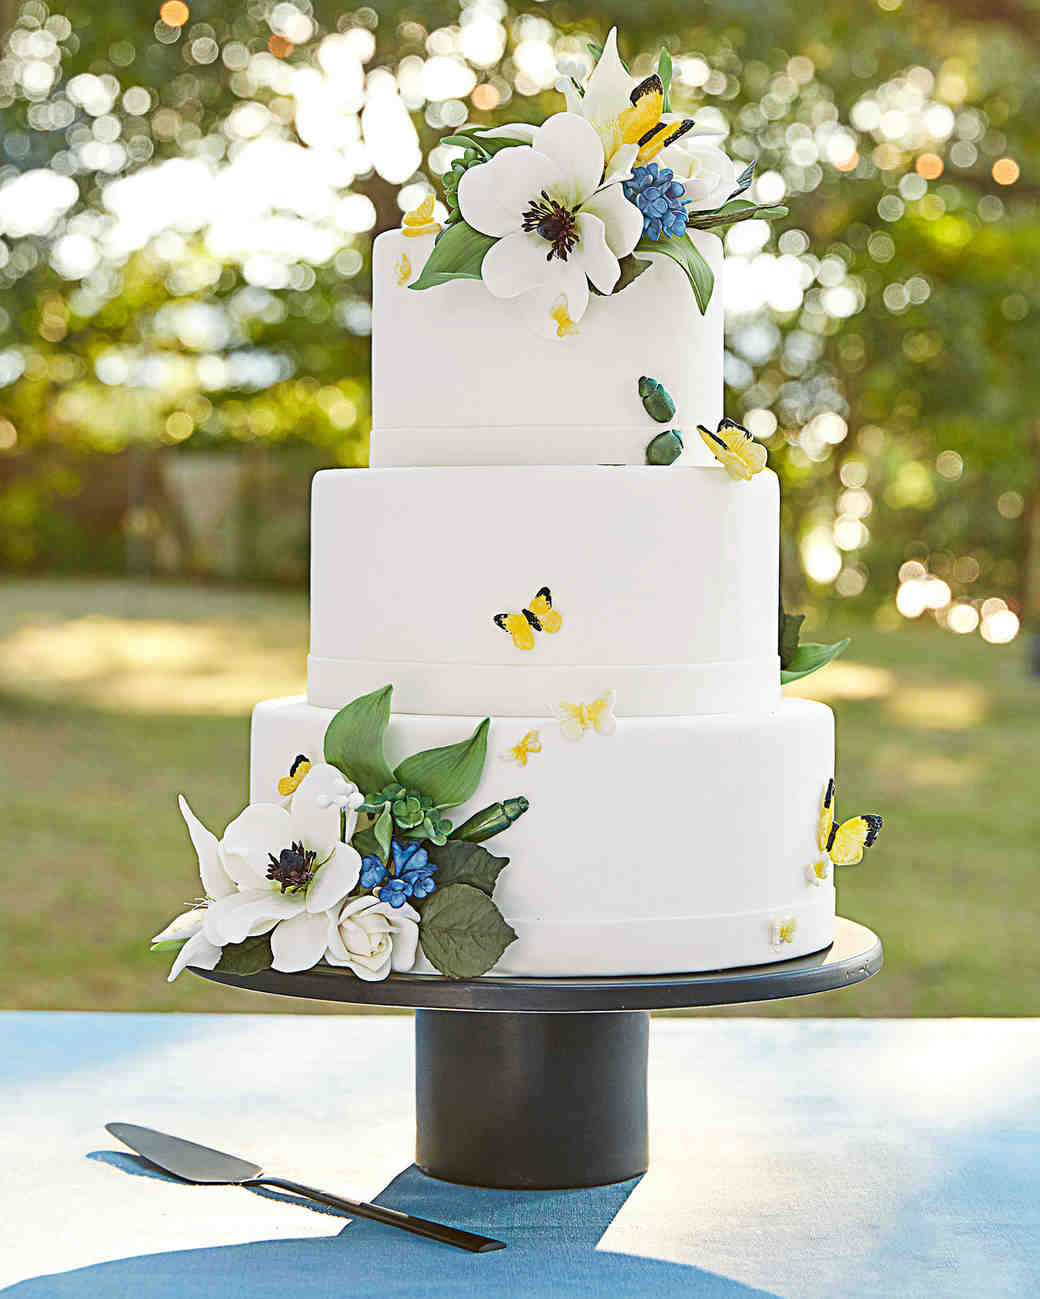 104 white wedding cakes that make the case for going classic katie samuel wedding cake izmirmasajfo